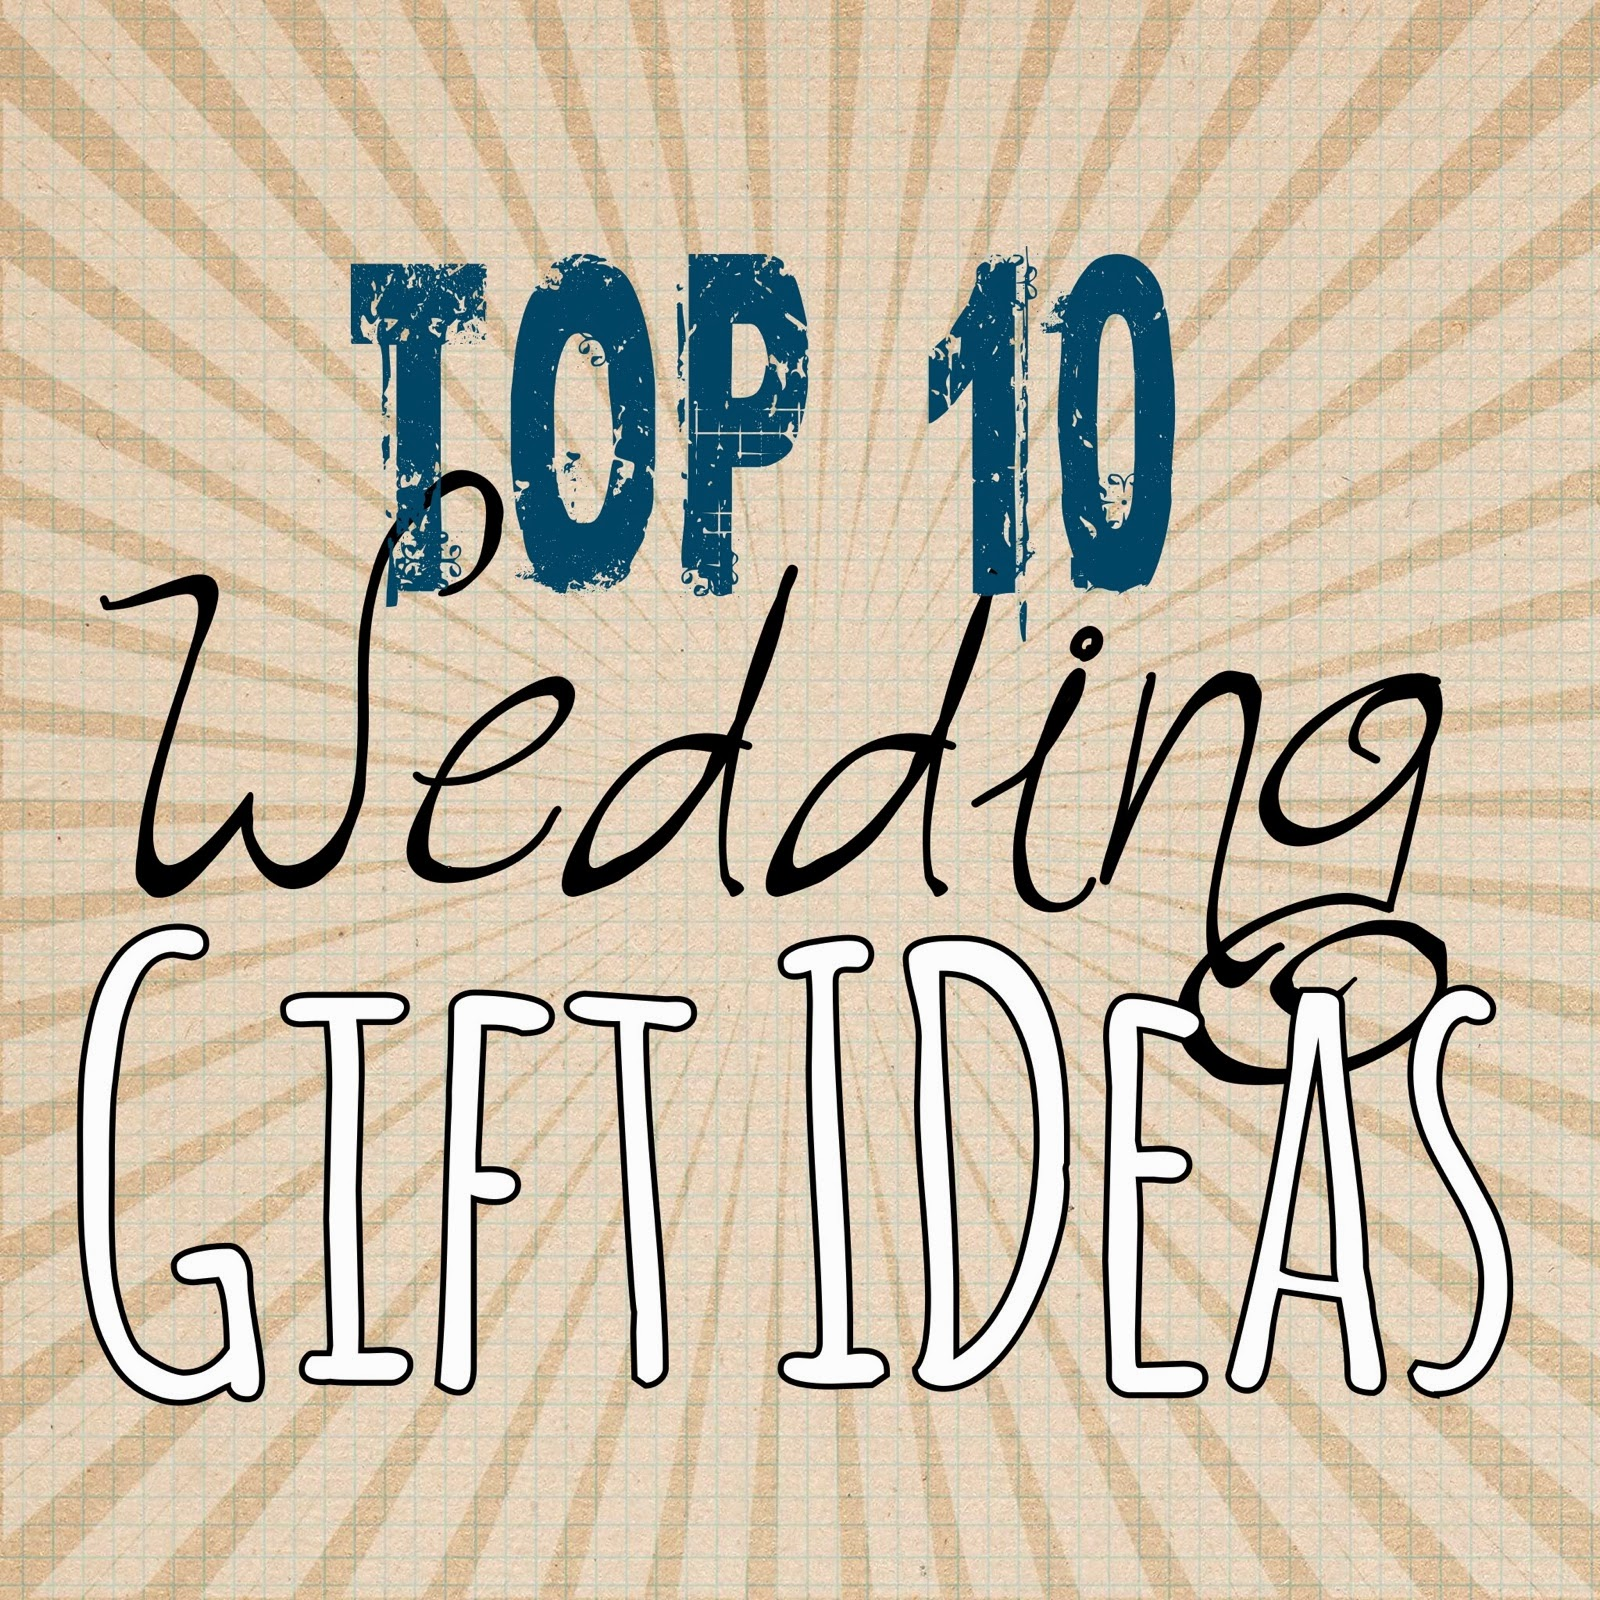 Unique Wedding Gifts Ideas Friends Top 10 wedding gift ideas